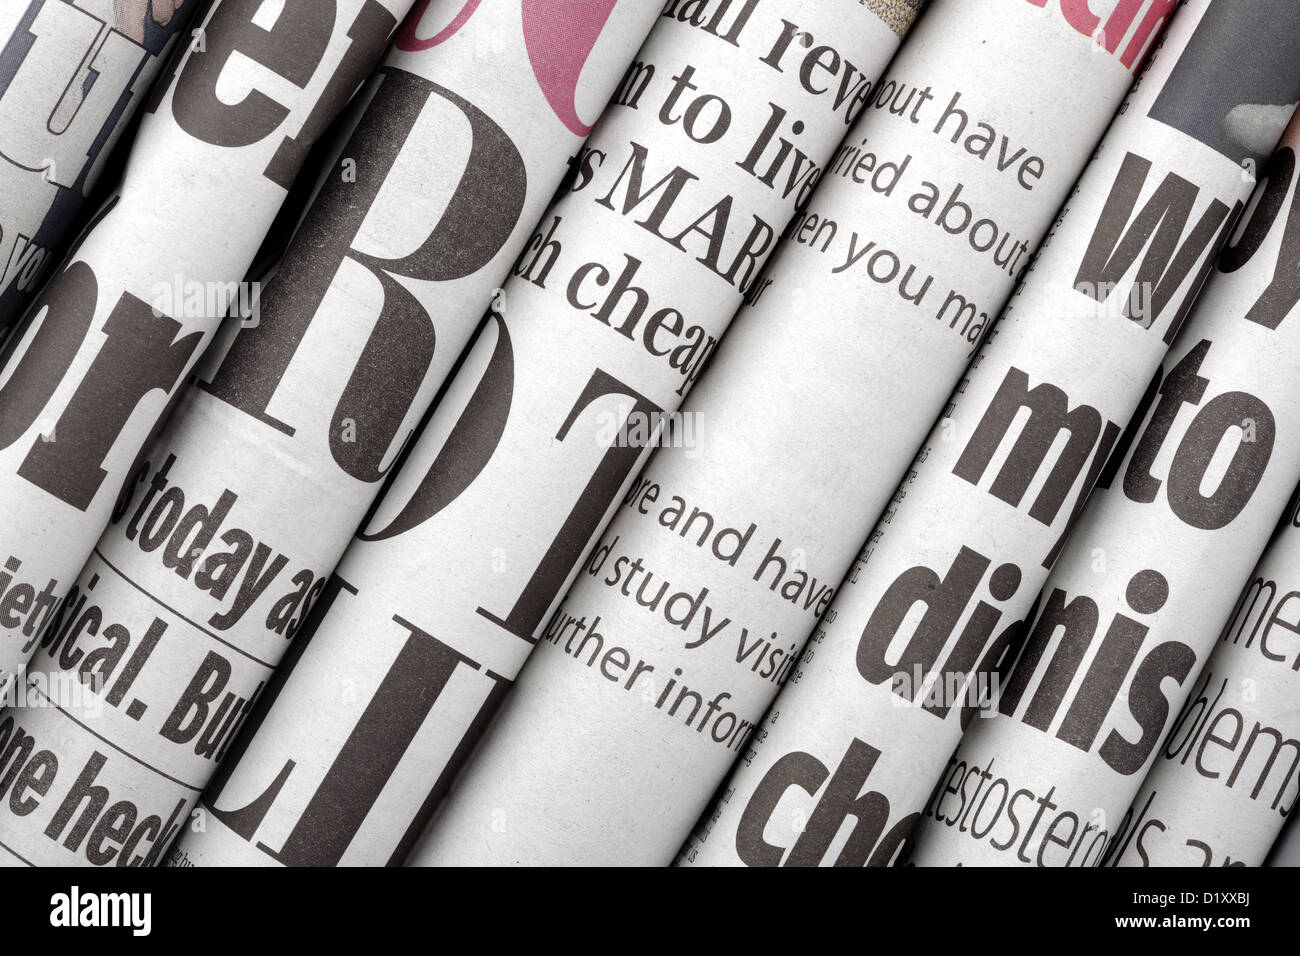 Newspaper headlines - Stock Image